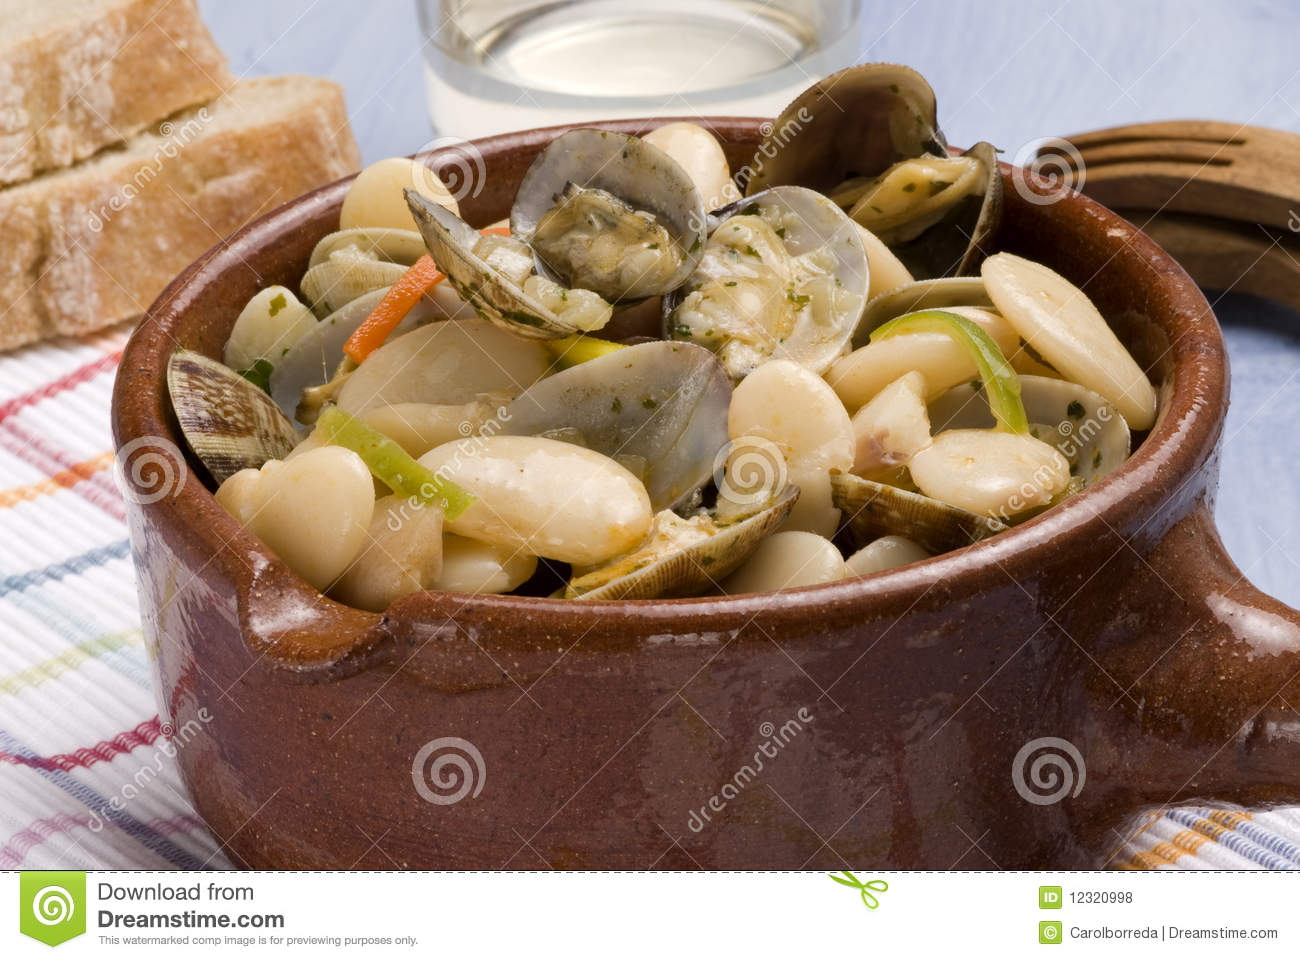 Clams and beans asturias style spanish cuisine royalty for Asturias cuisine